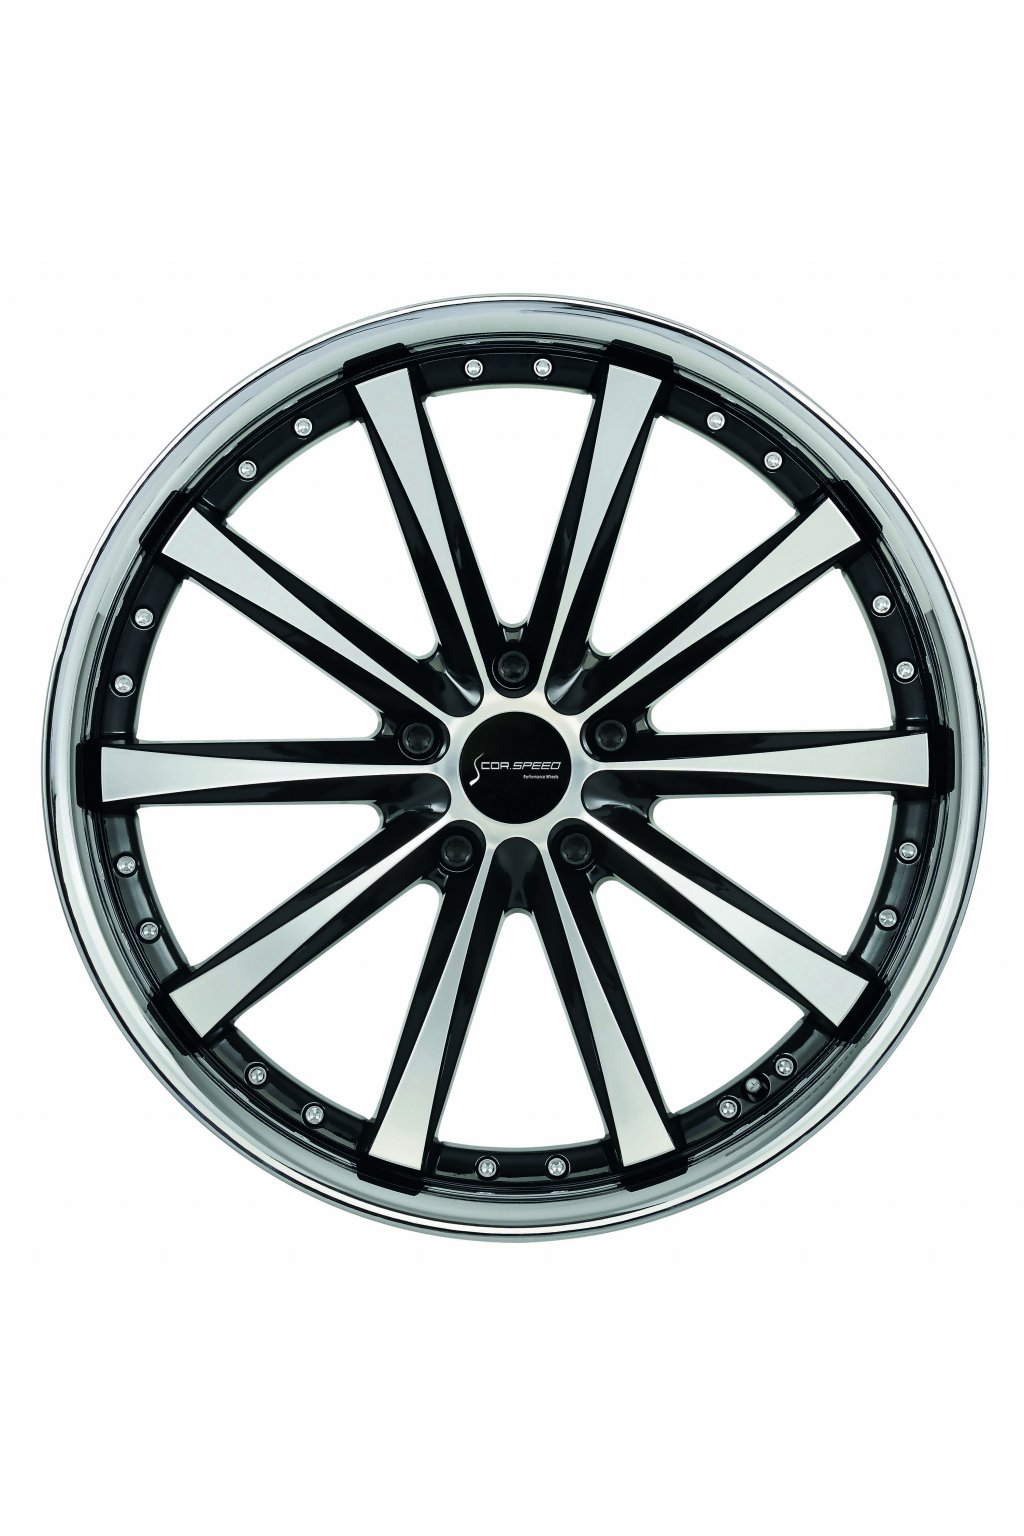 Disk CORSPEED ARROWS 8.5x19 / 5x112